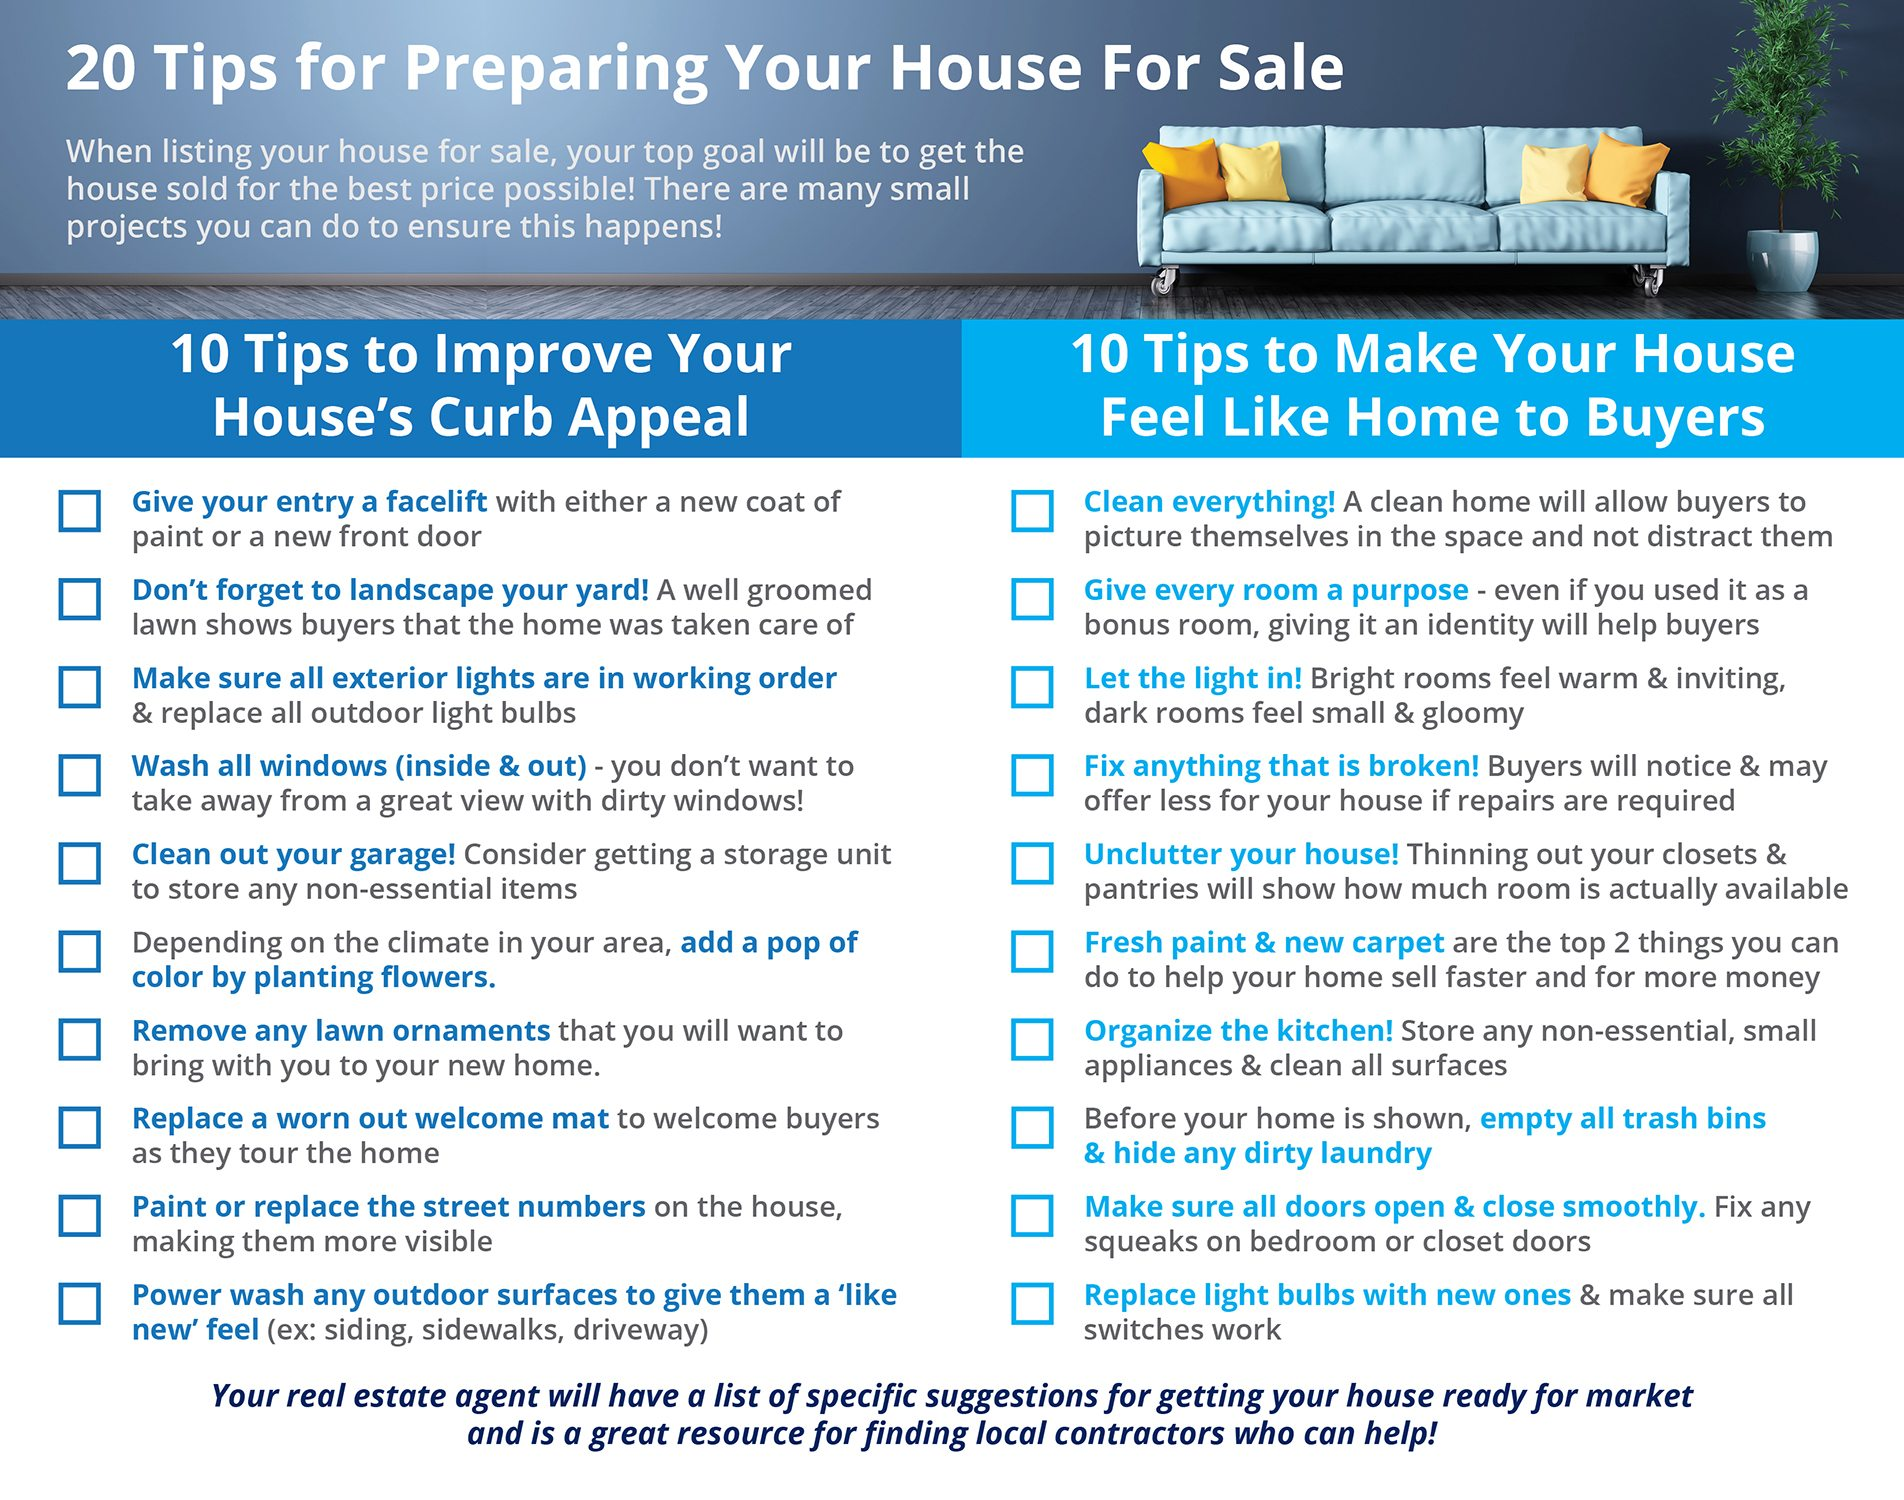 Tips for Preparing Your House for Sale This Spring [INFOGRAPHIC]   Simplifying The Market